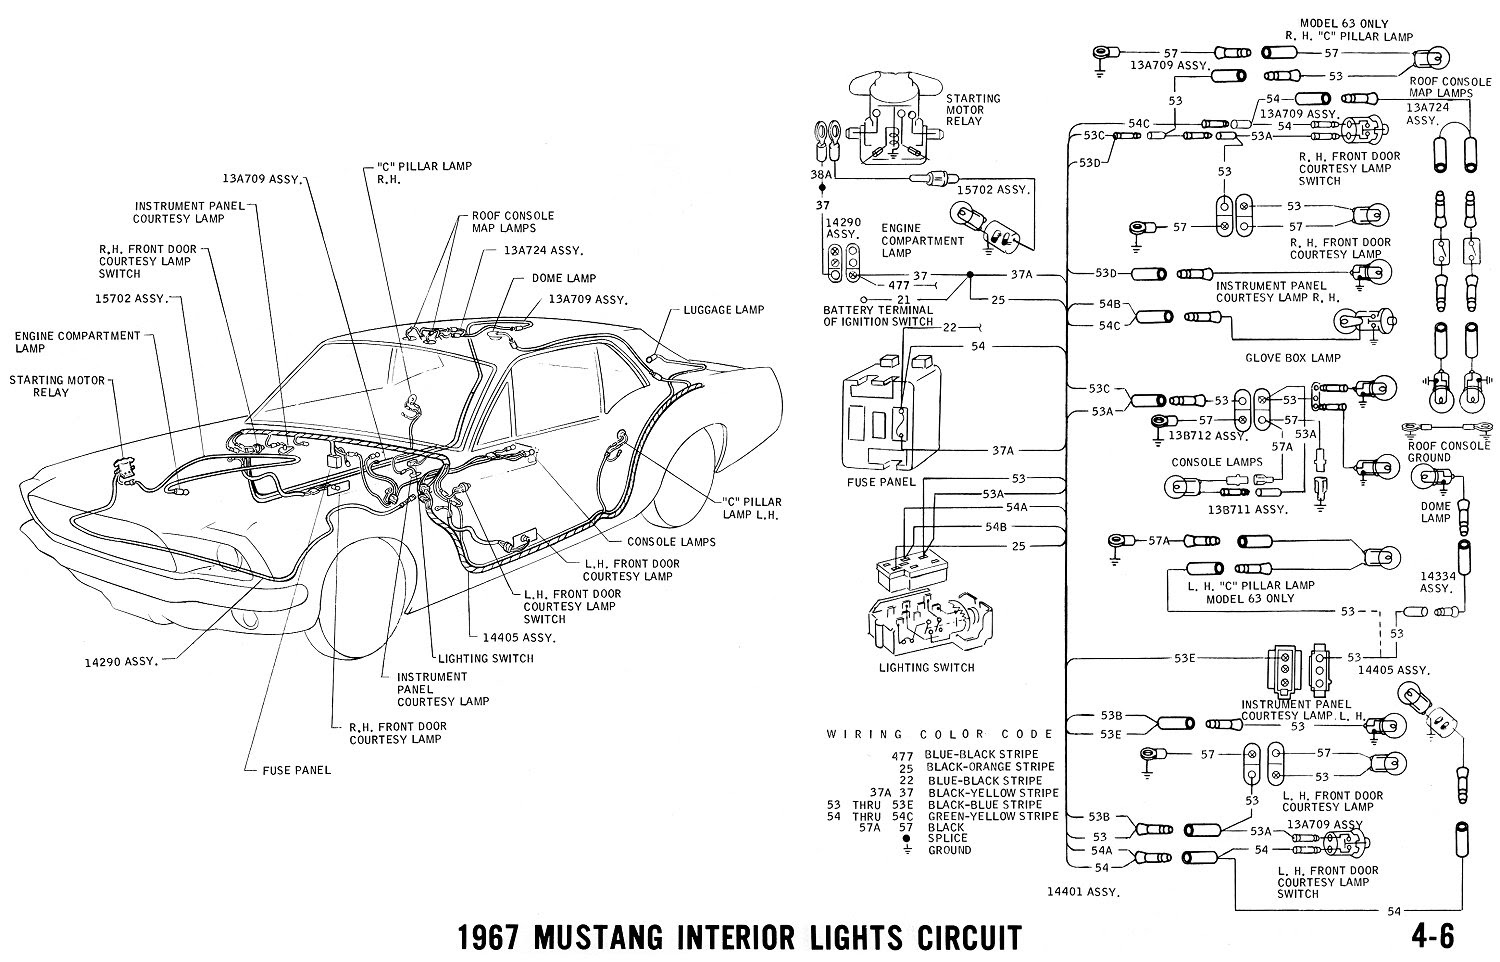 1967 Camaro Engine Wiring Harness Diagram Wiring Diagram Honeywell Ra89a Bege Wiring Diagram